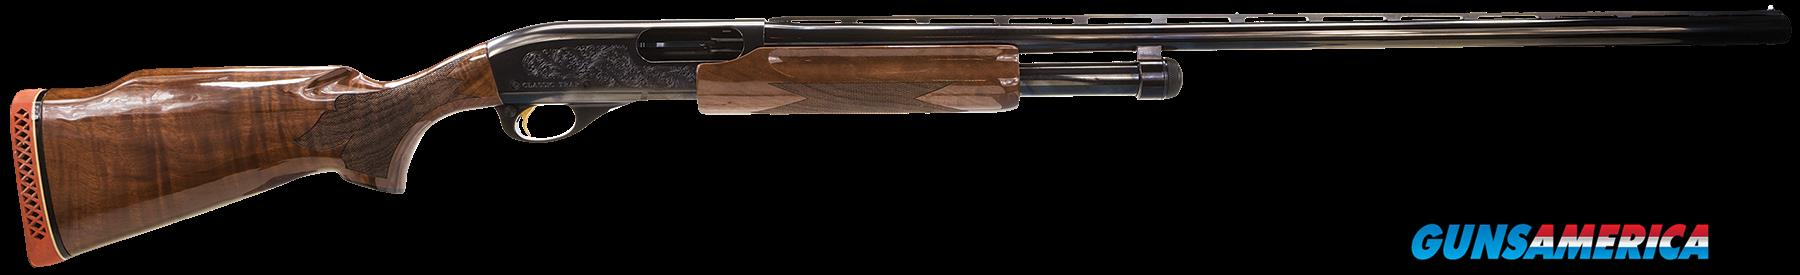 "Remington Firearms 24857 870 Wingmaster Pump 12 Gauge 30"" 2.75"" Walnut High Gloss Stk Blued  Guns > Shotguns > R Misc Shotguns"